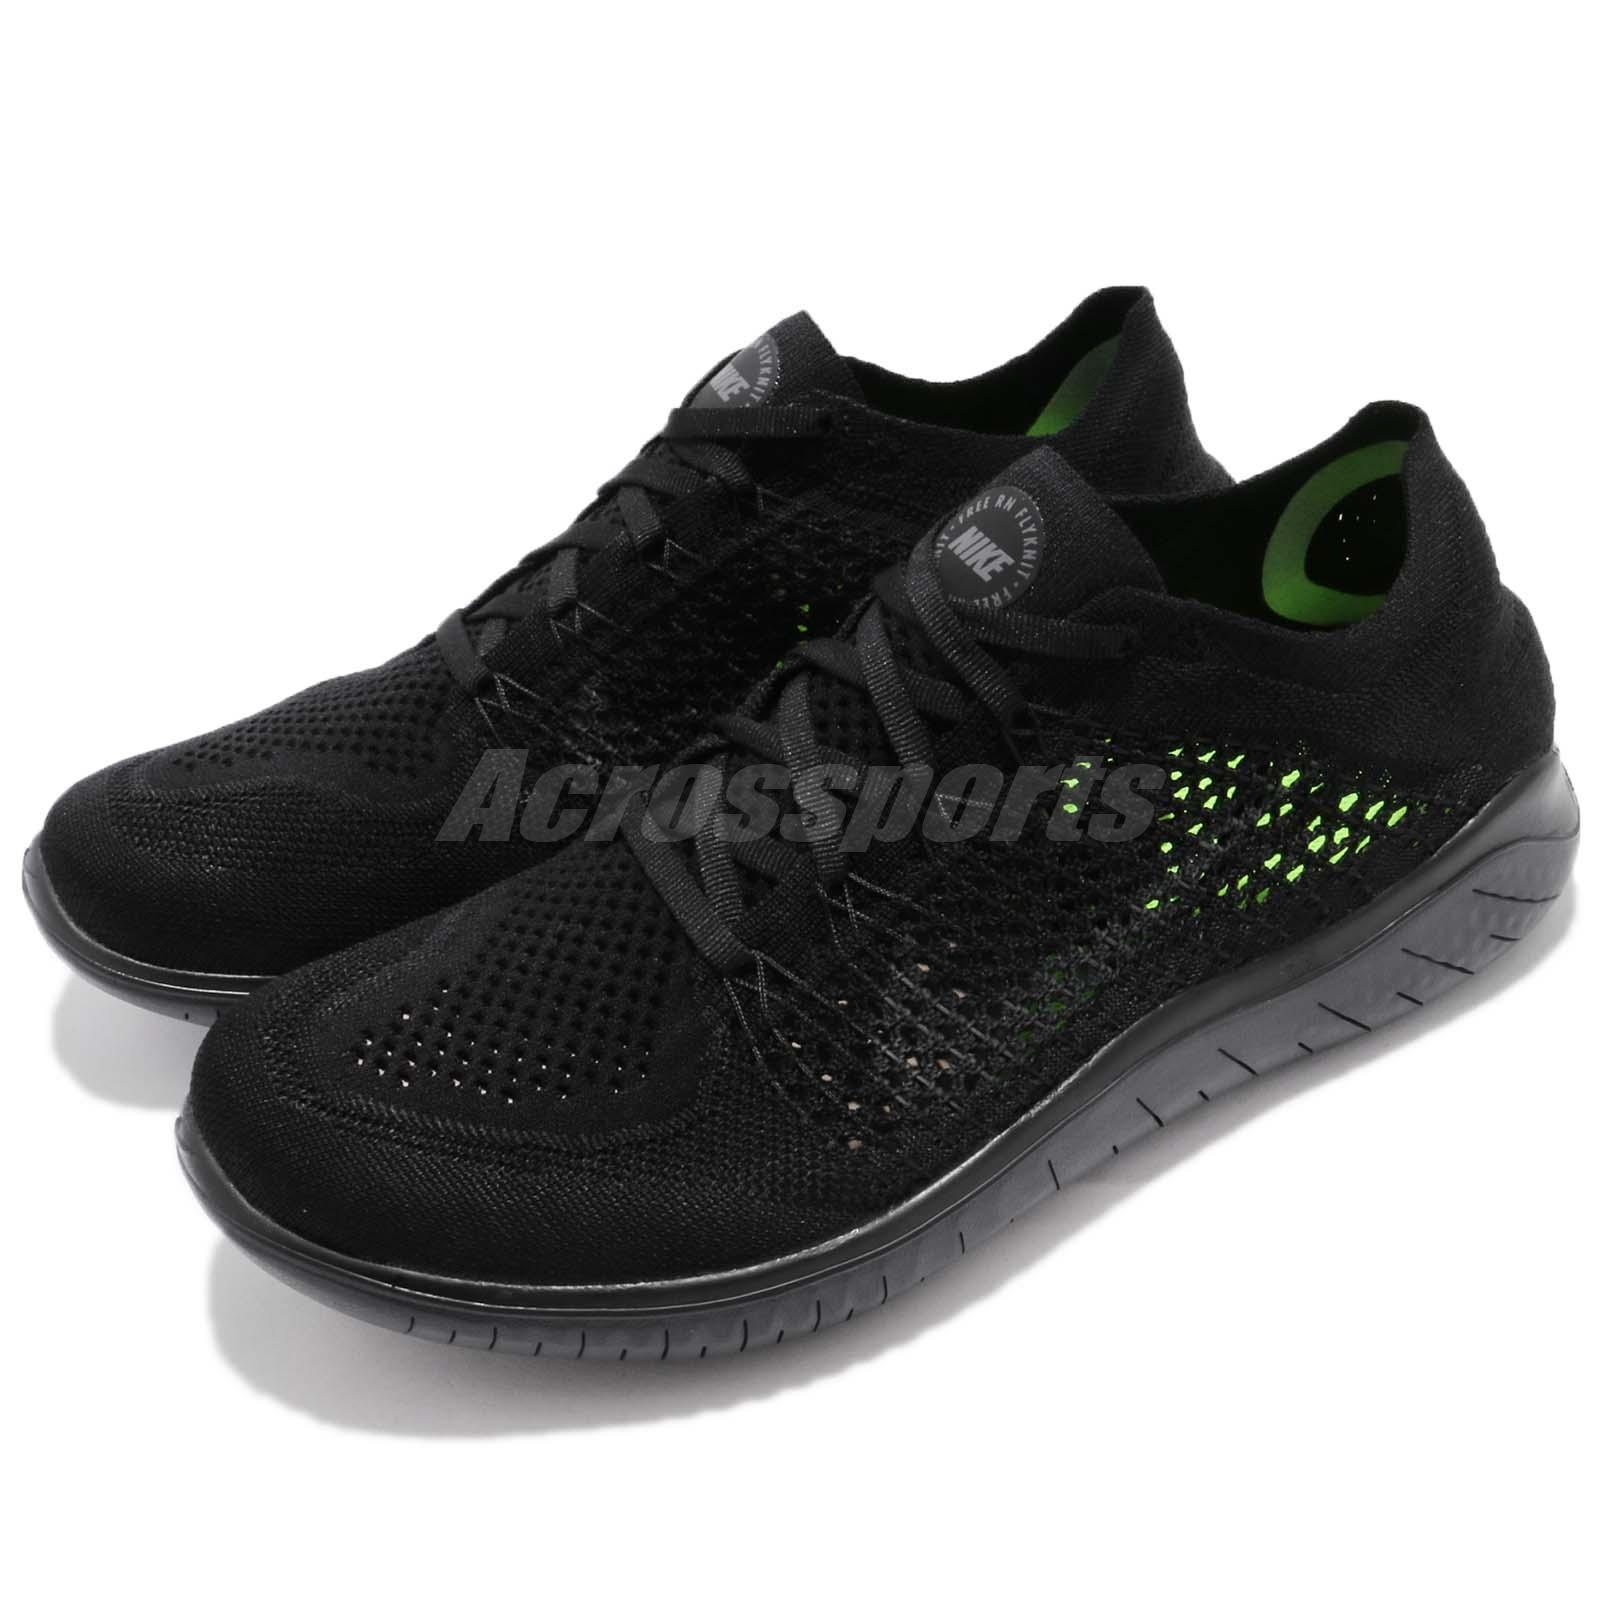 07bfedb8157c Details about Nike Free RN Flyknit 2018 Run Black Anthracite Men Running  Shoes 942838-002